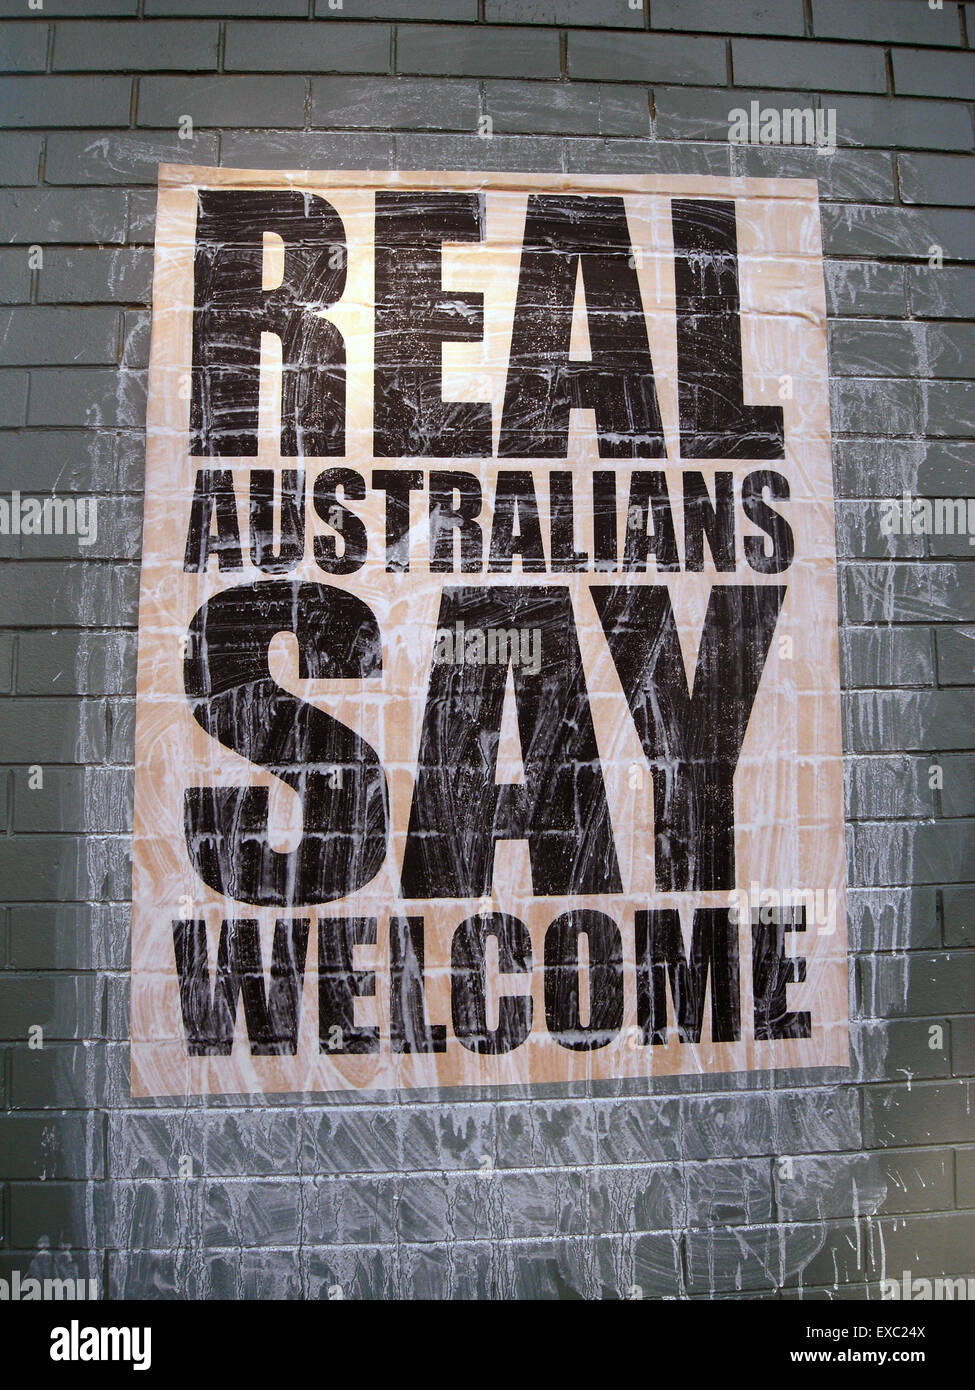 Perth, Australia. 11th July, 2015. As a nation built on immigration and multiculturalism, not all Australians support - Stock Image